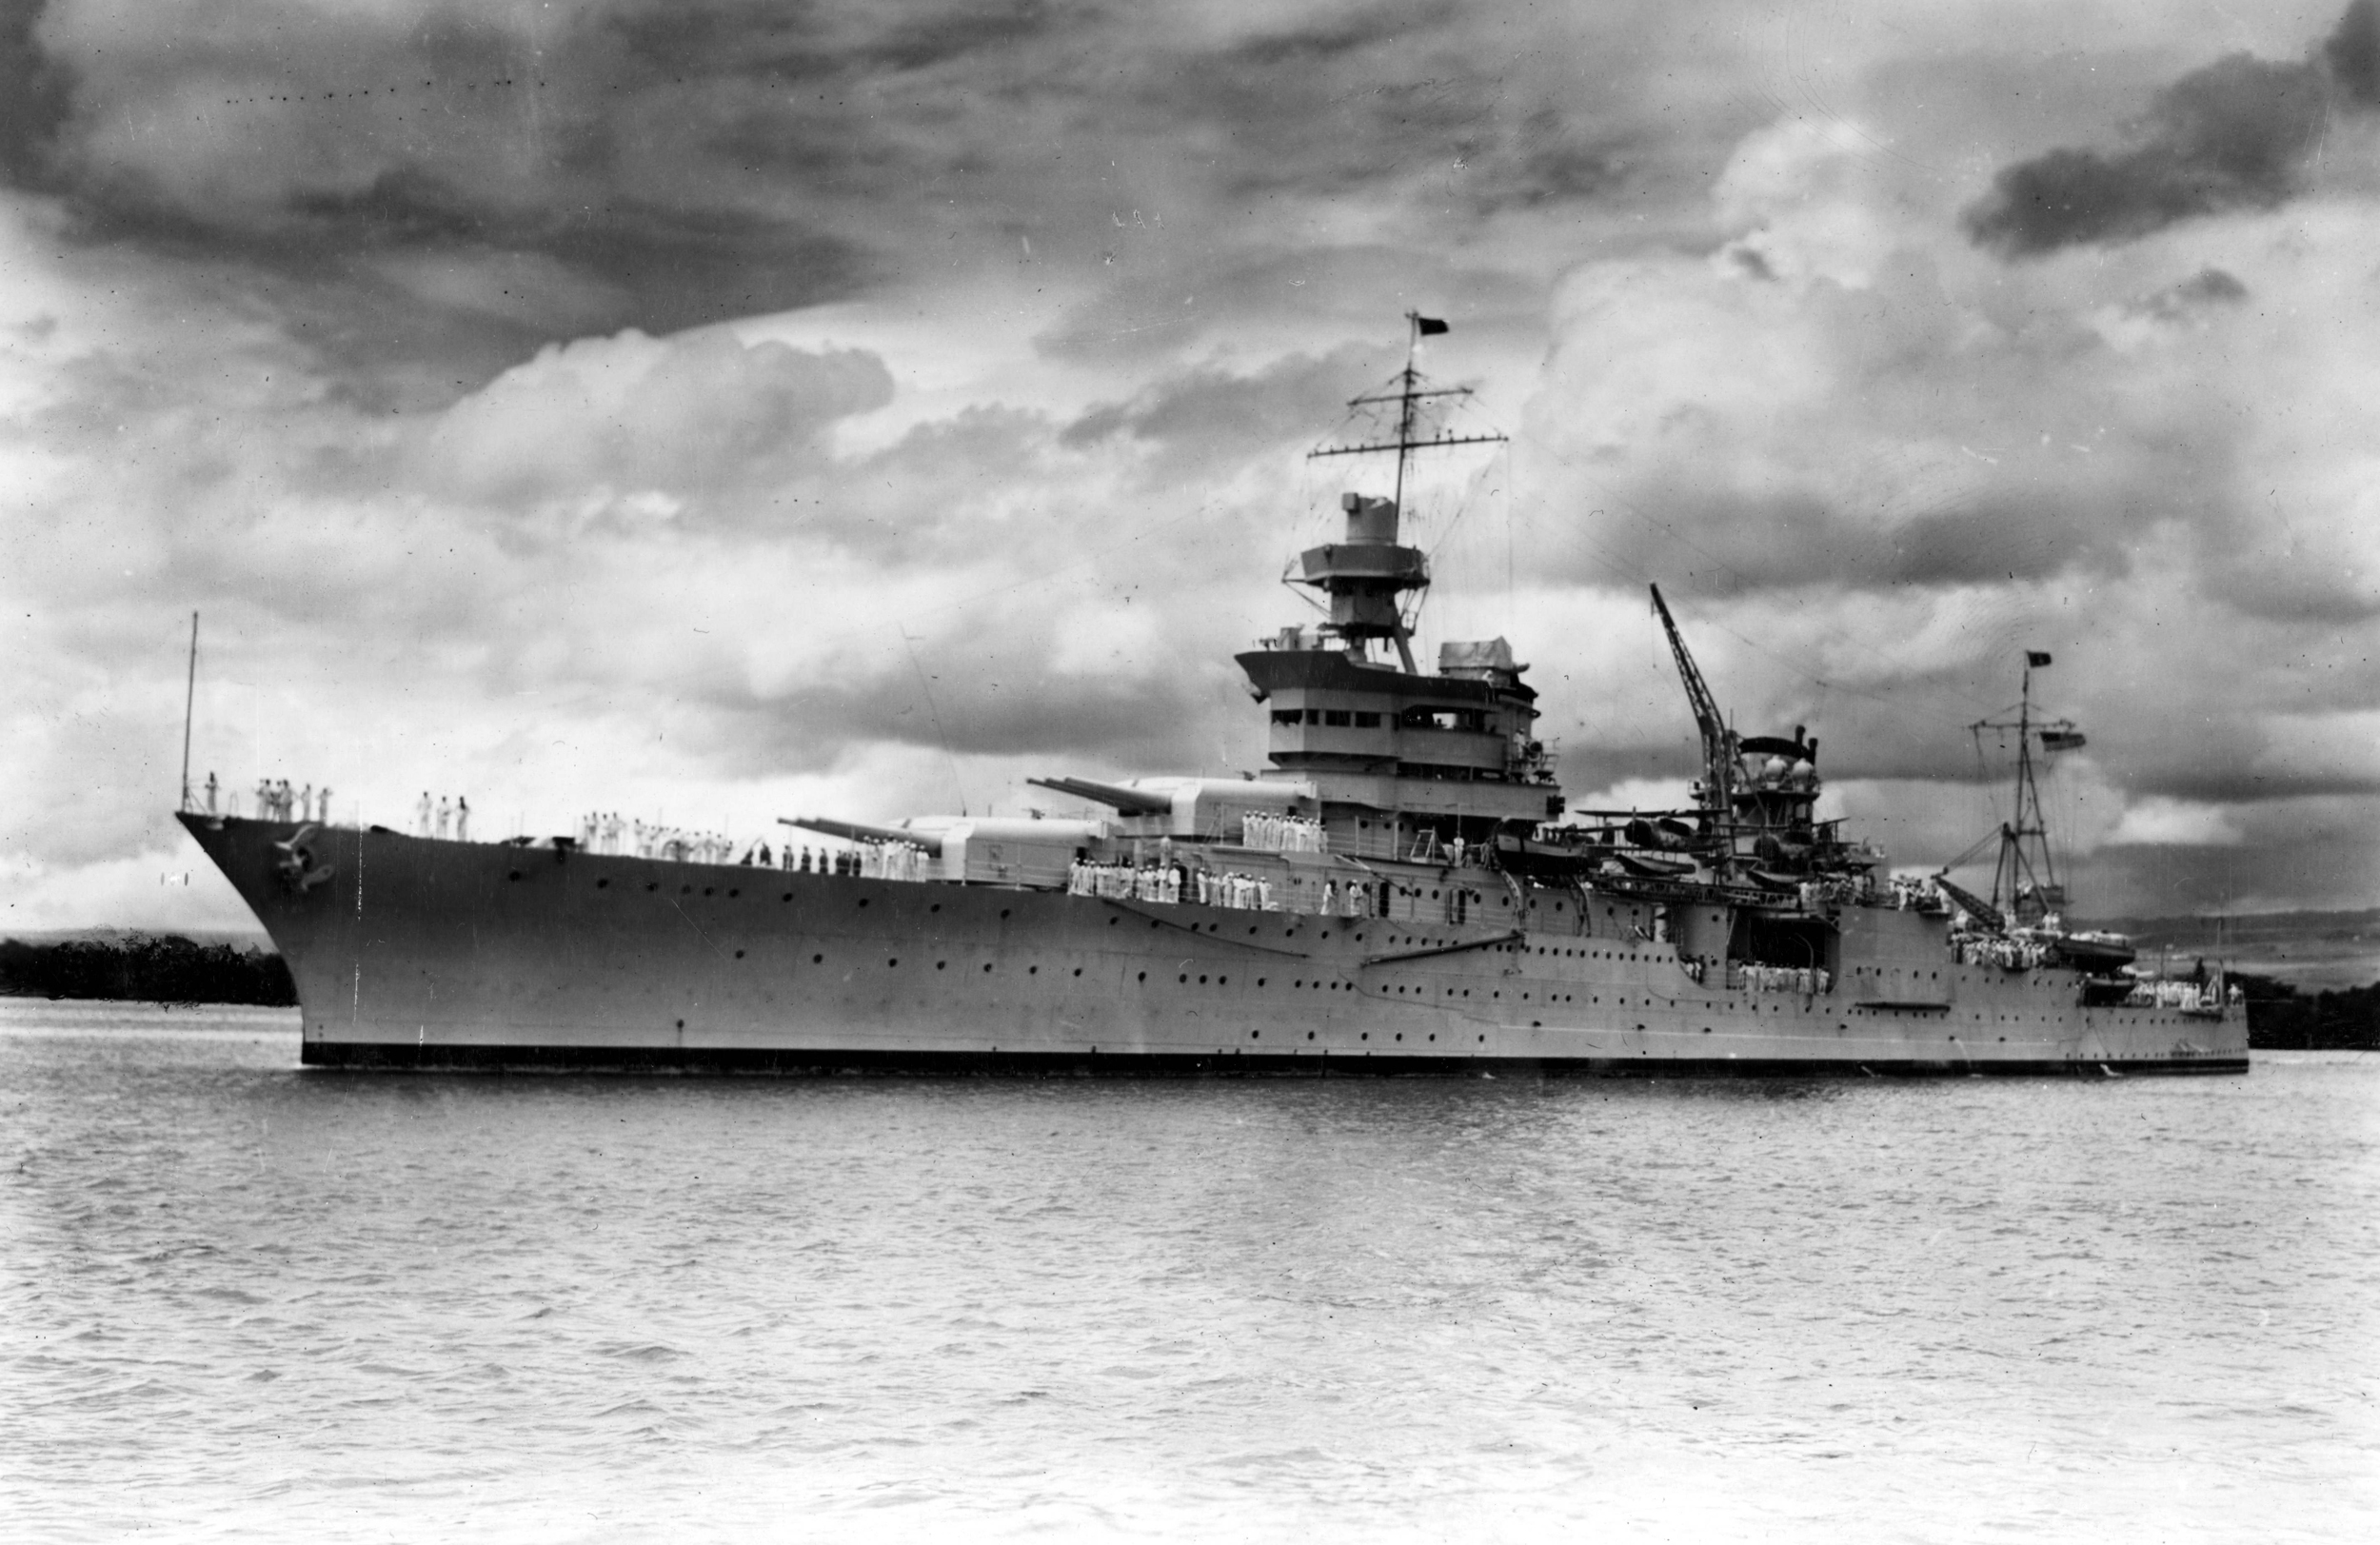 Researchers Find WWII-Era USS Indianapolis Wreck